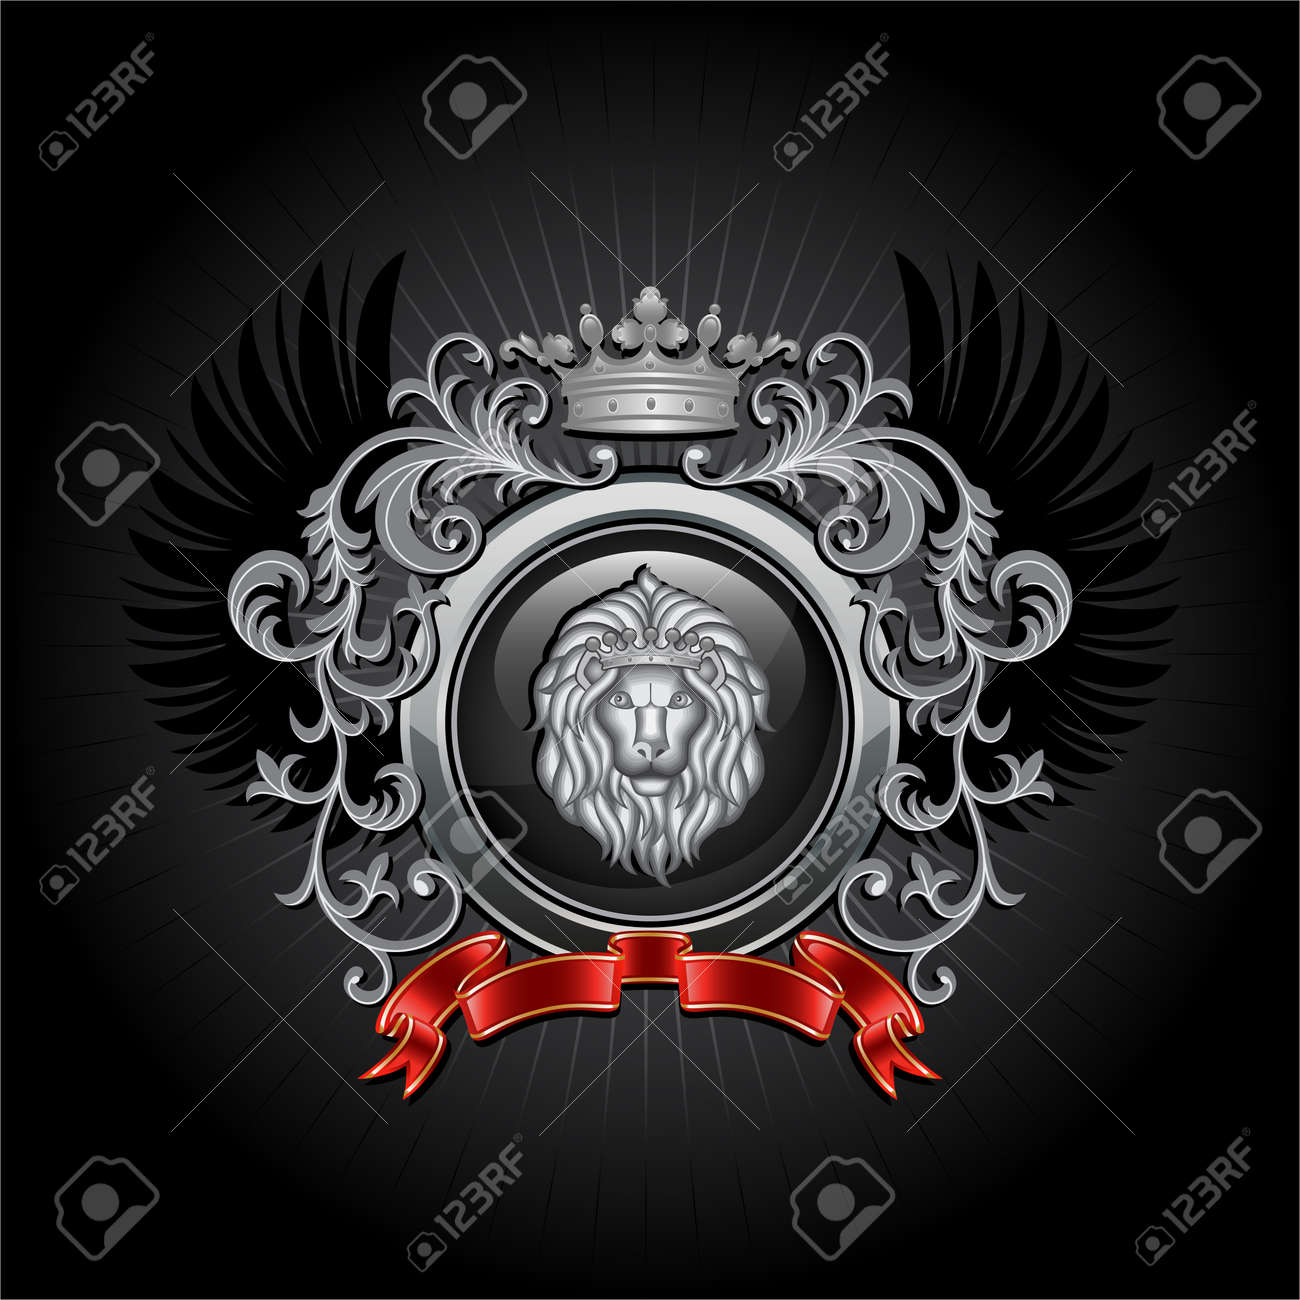 Coat of arms Stock Vector - 8503033